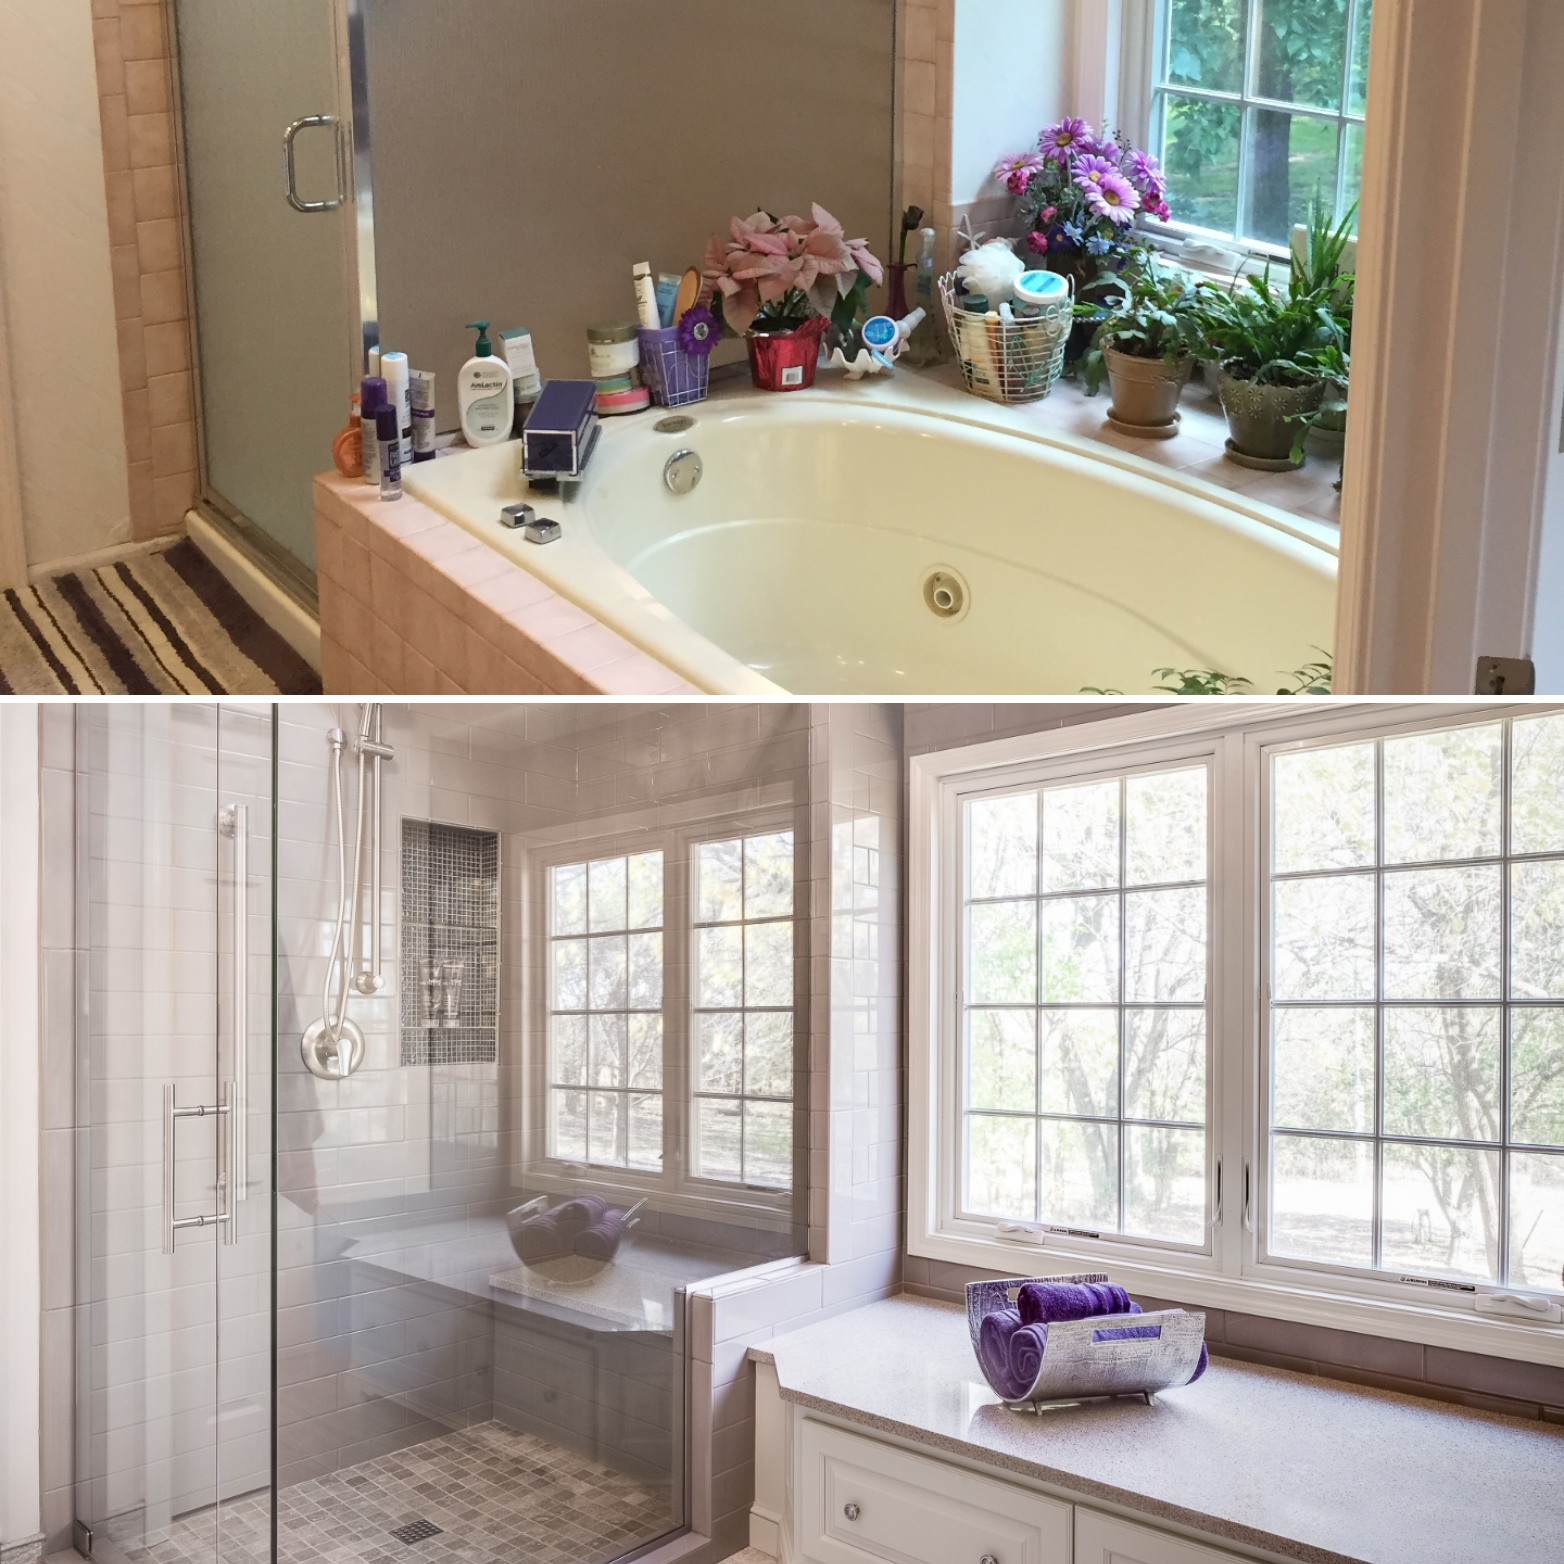 bathroom remodeling kansas city. Because Of The Location And Age This Carpet, Safely Addressing Removing Mold Was Our First Priority. Carpet Promptly Replaced With A Bathroom Remodeling Kansas City